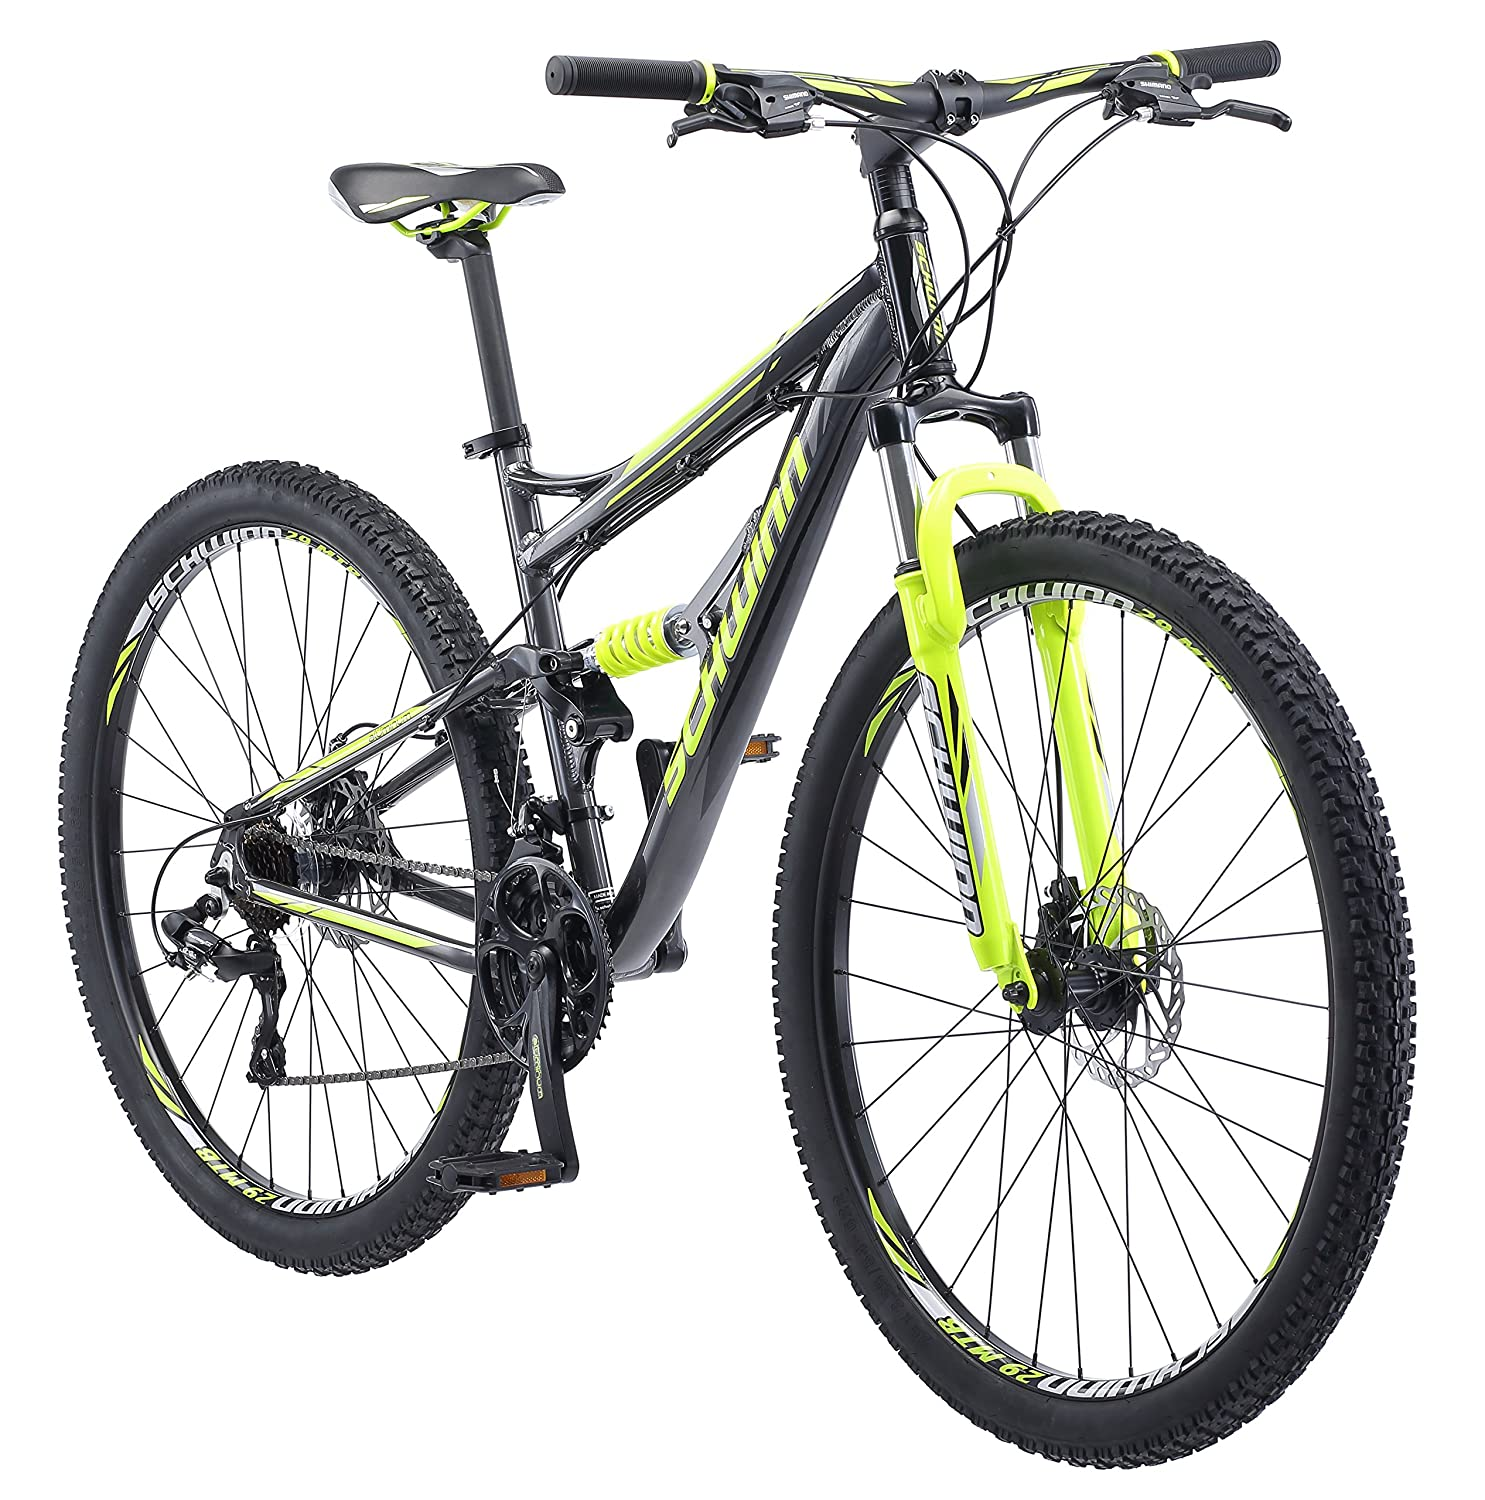 Dual Suspension Mountain Bike >> Schwinn Traxion Full Dual Suspension Mountain Bike Featuring 18 Inch Medium Aluminum Frame And 29 Inch Wheels With Mechanical Disc Brakes 24 Speed